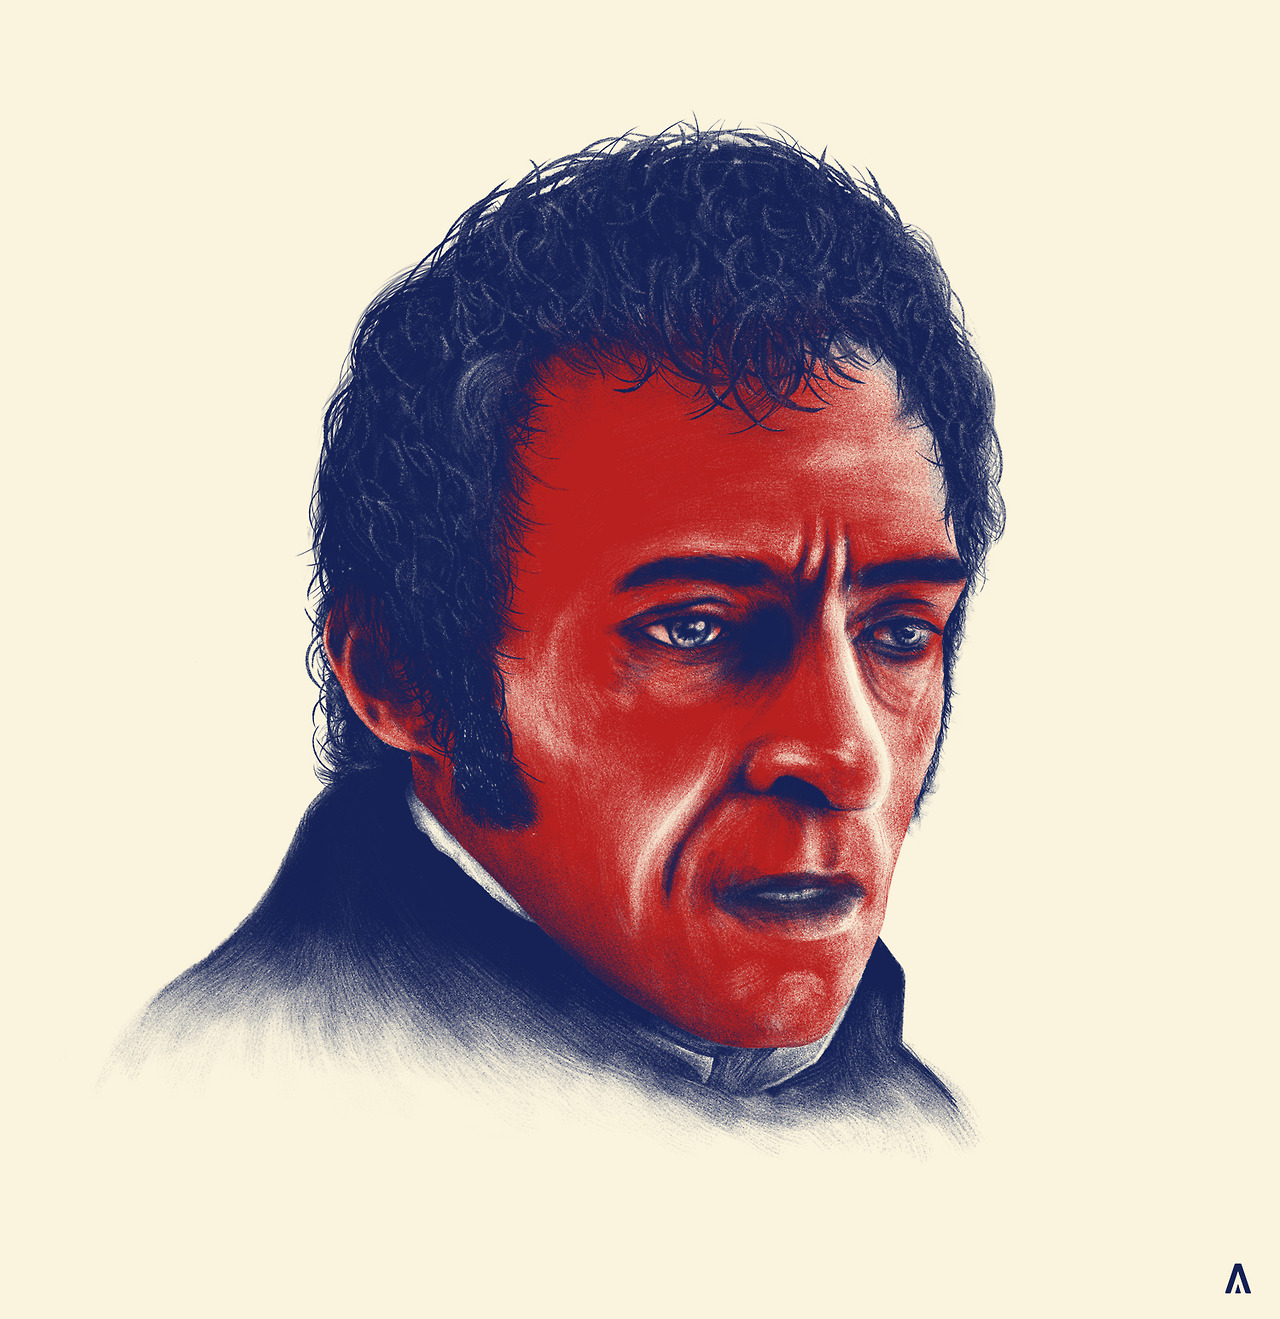 '24601' My illustration of Hugh Jackman as Jean ValJean from the movie musical 'Les Miserables'. This is the first in a planned series of conceptual portraits of characters from movies, tv shows, bands etc!  Trialled some new techniques with this one, they were not working at all, and the I had a revolutionary break through which now will change the way I work which is a fantastic thing! Hope you all enjoy!  More to come, Remember to hit me up on Facebook, Twitter for other updates too! Thanks